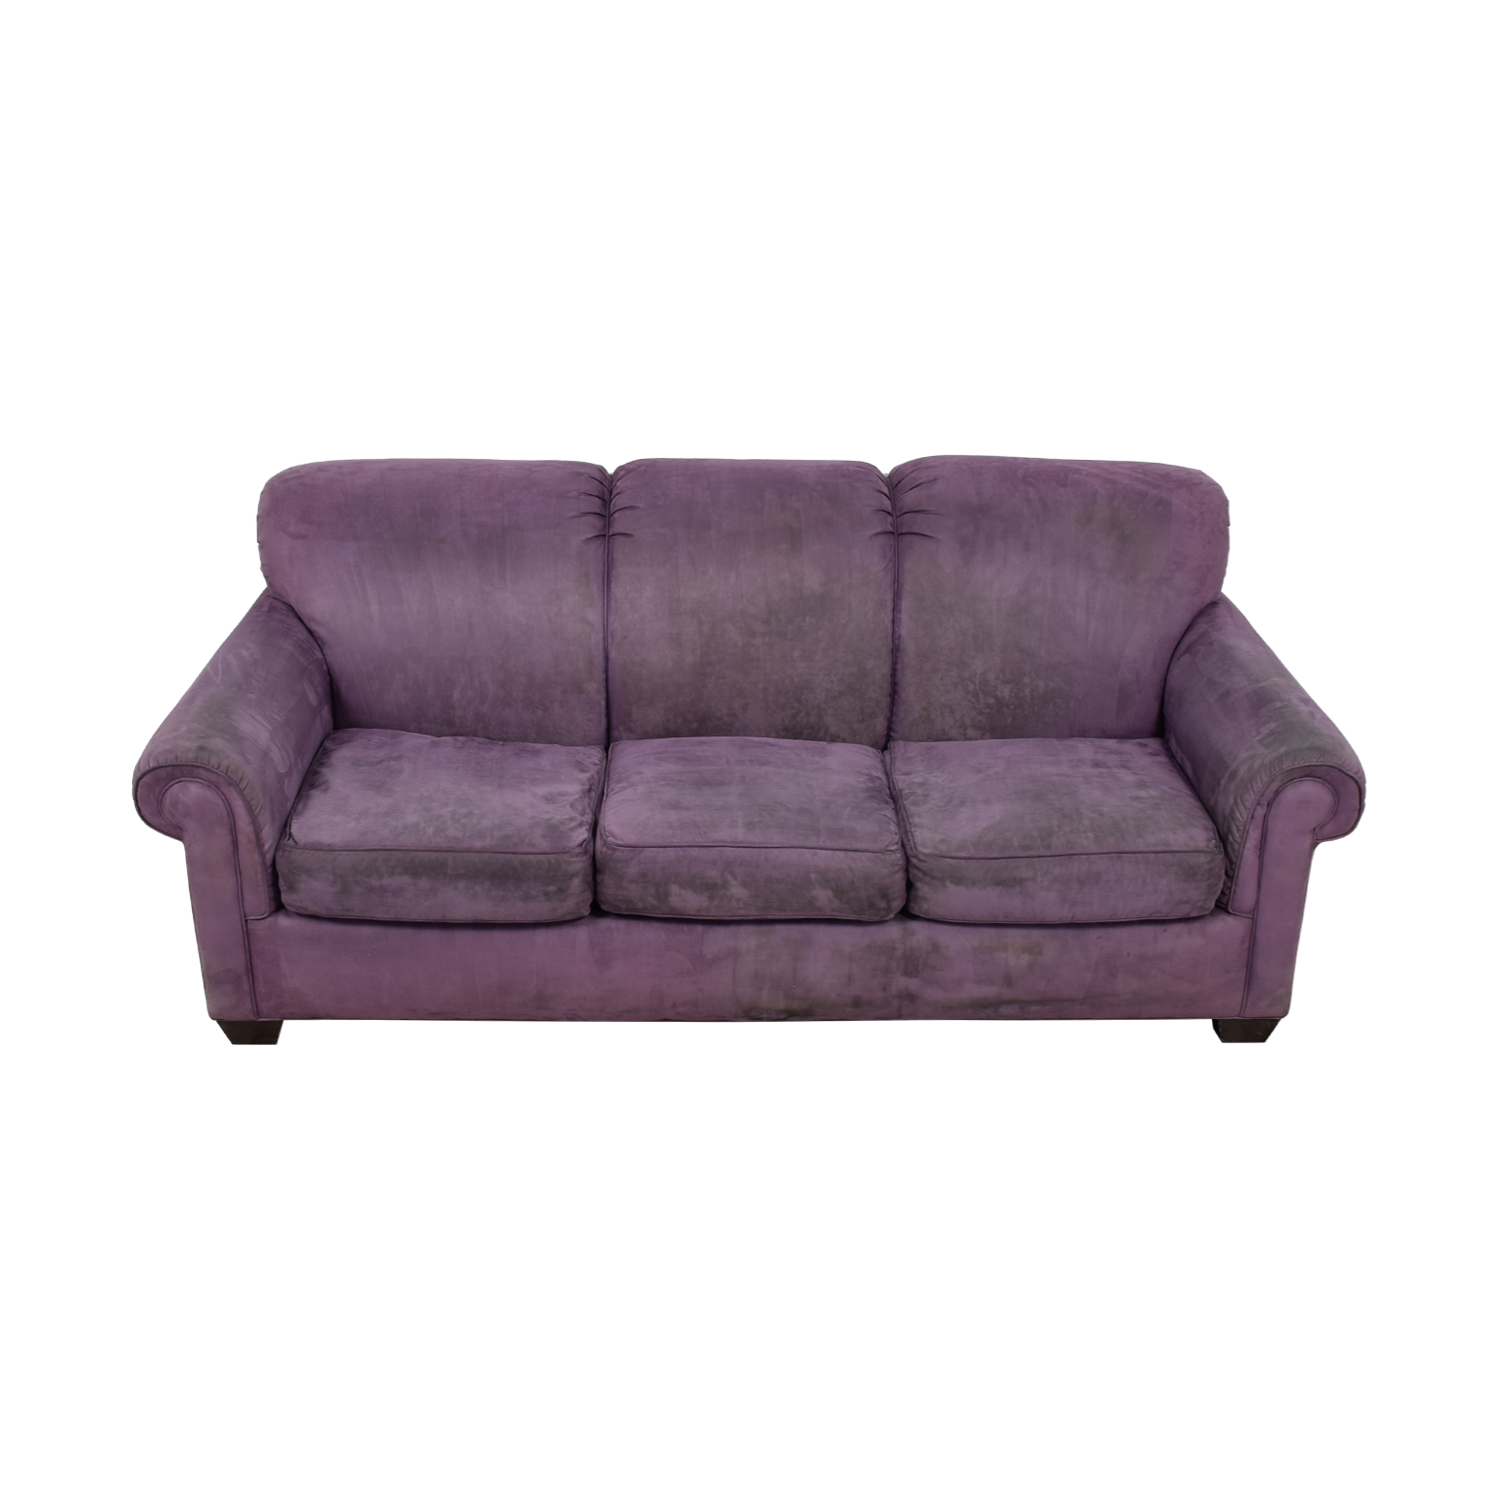 Rowe Rowe Purple Three-Cushion Sofa nj